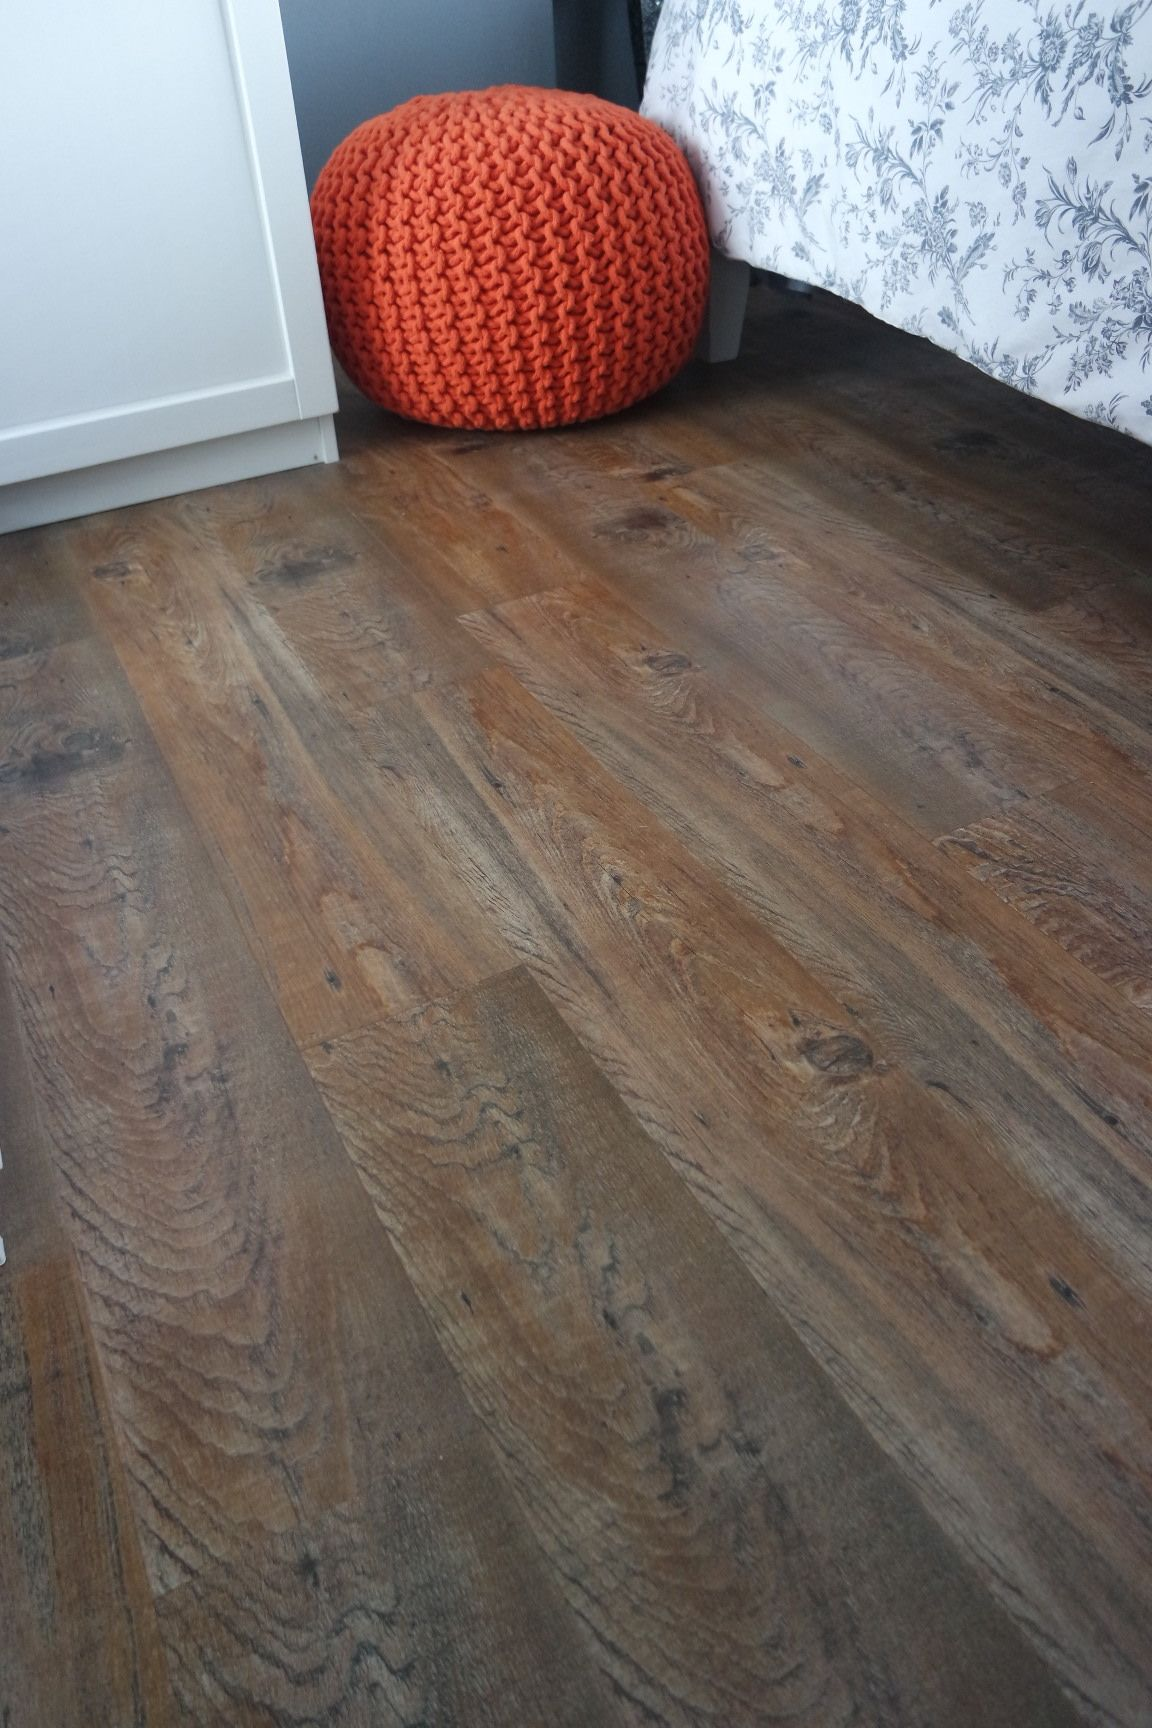 Ambiance Luxury Vinyl Flooring Tiles Giving A Real Wood Feel To A Small Double Bedroom Colour Ru Vinyl Flooring Luxury Vinyl Flooring Small Double Bedroom